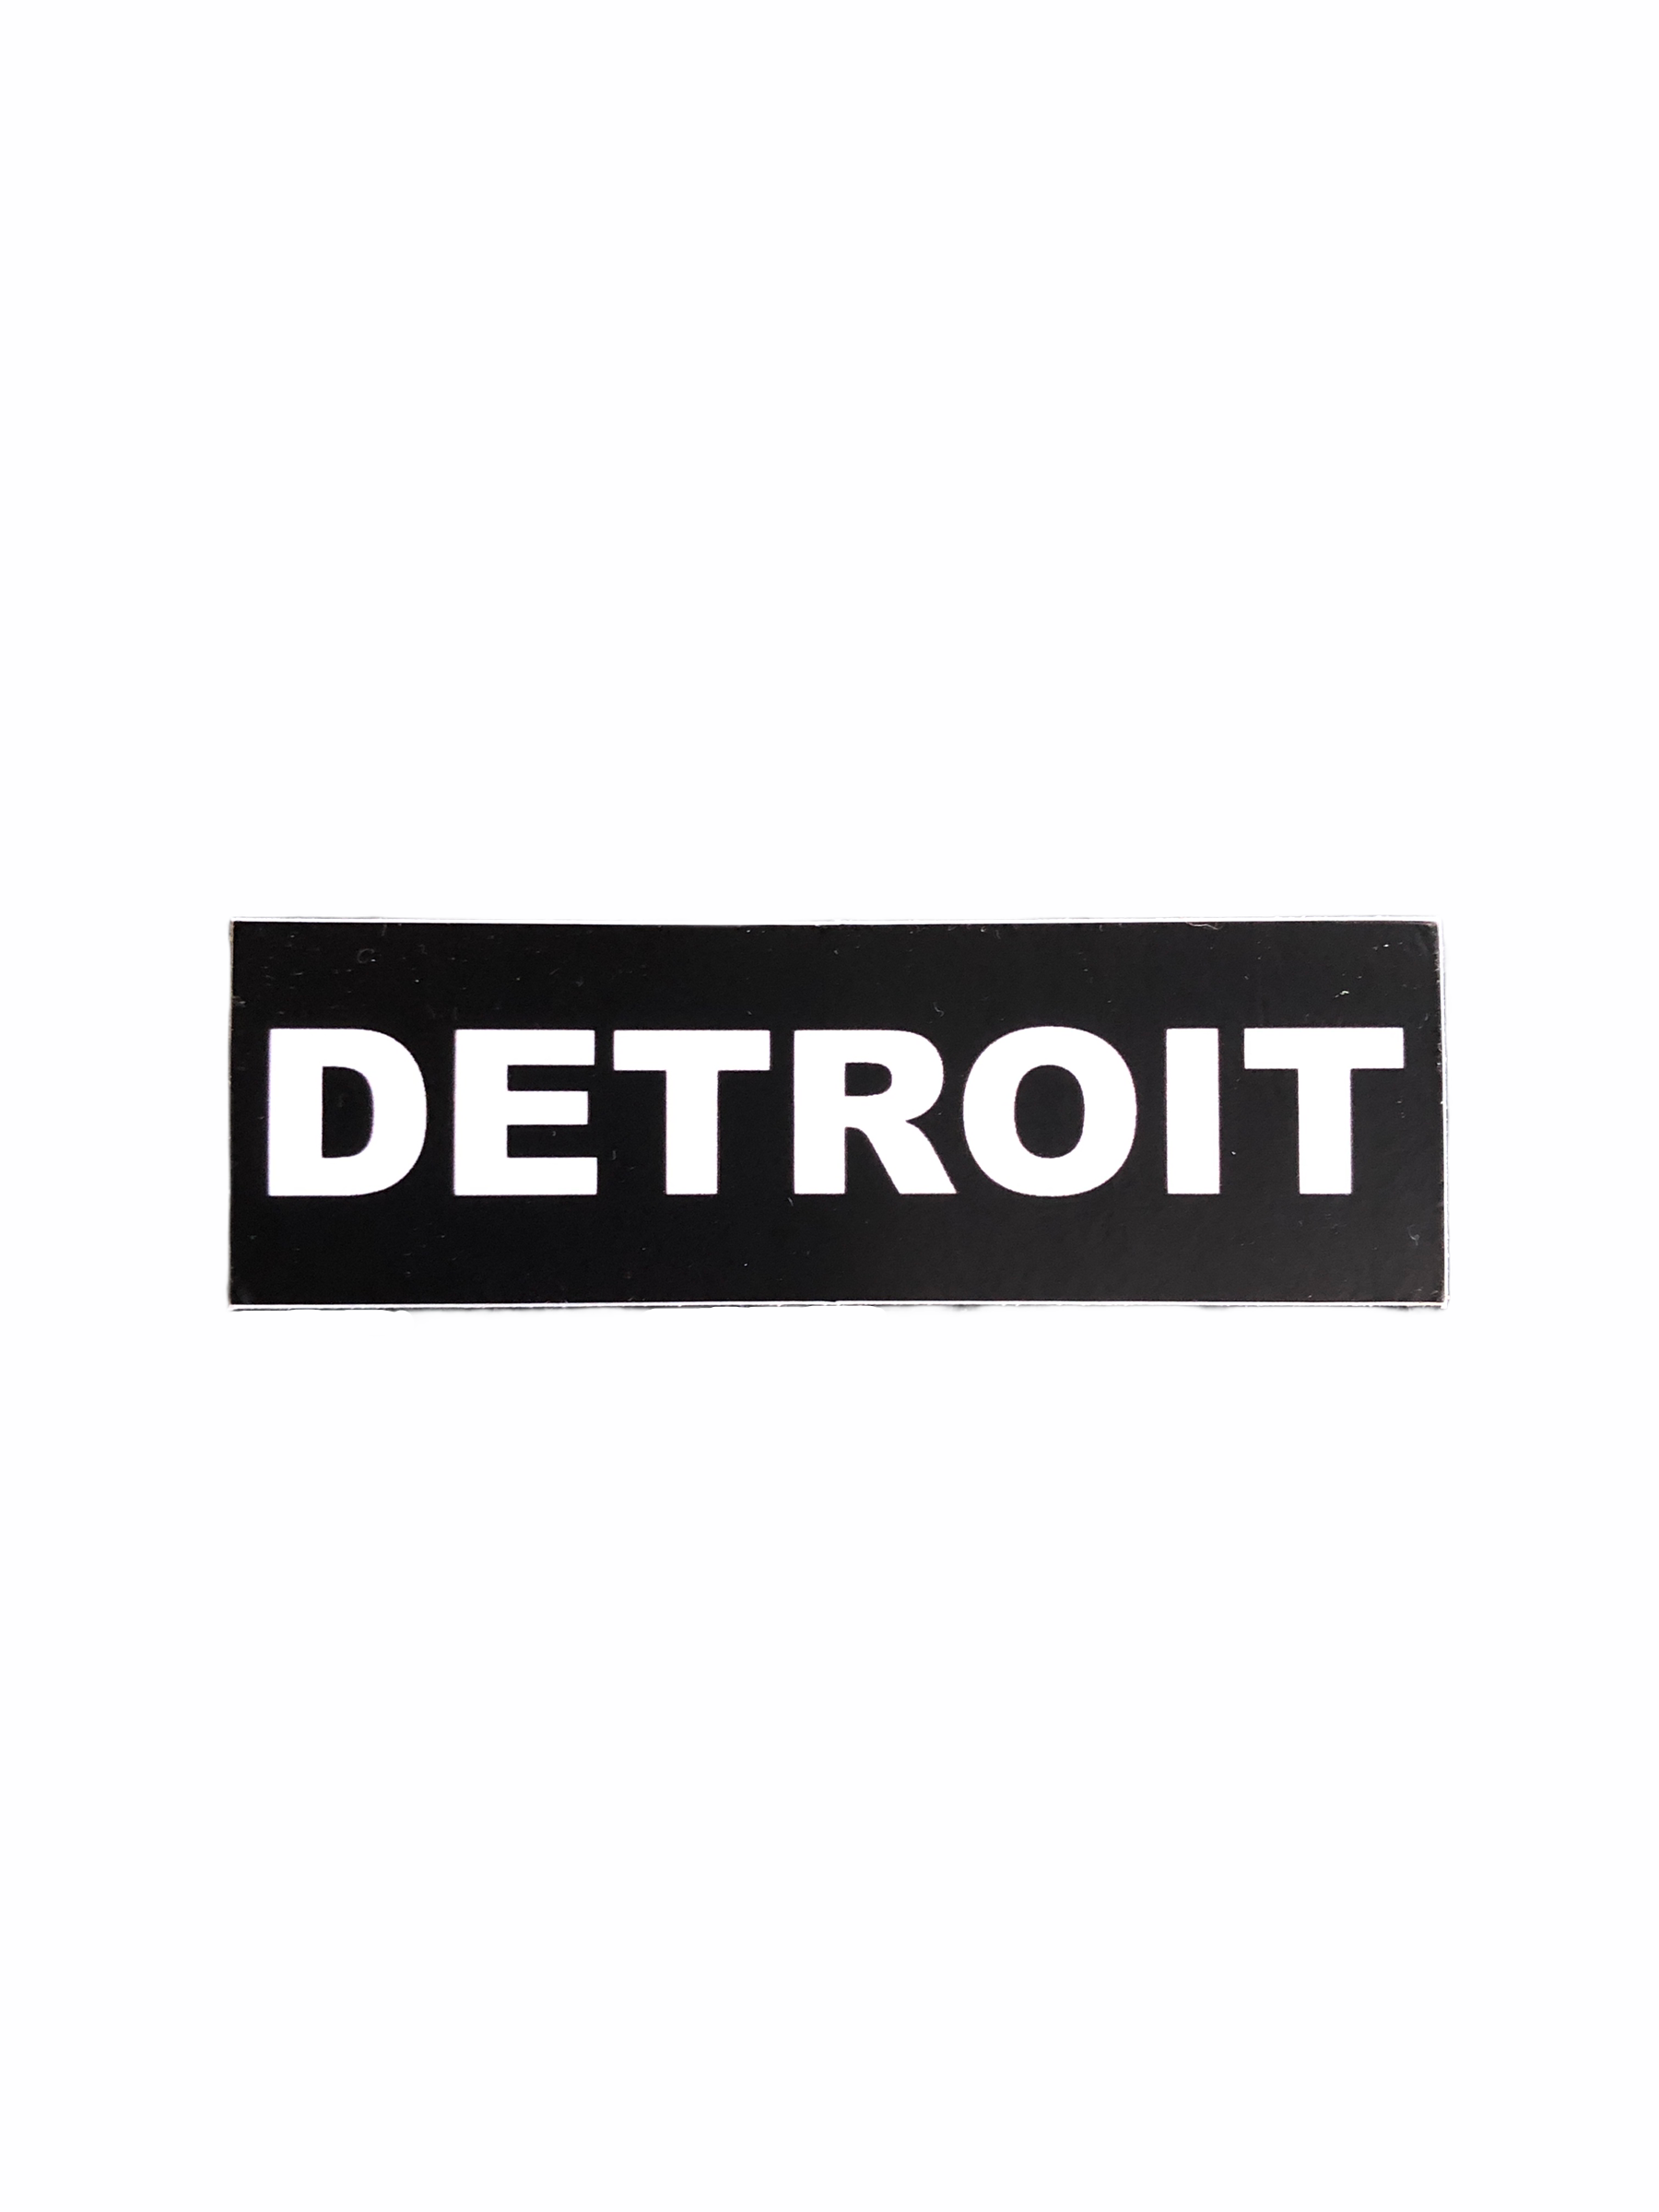 Detroit Premium Black Decal - Pure Detroit